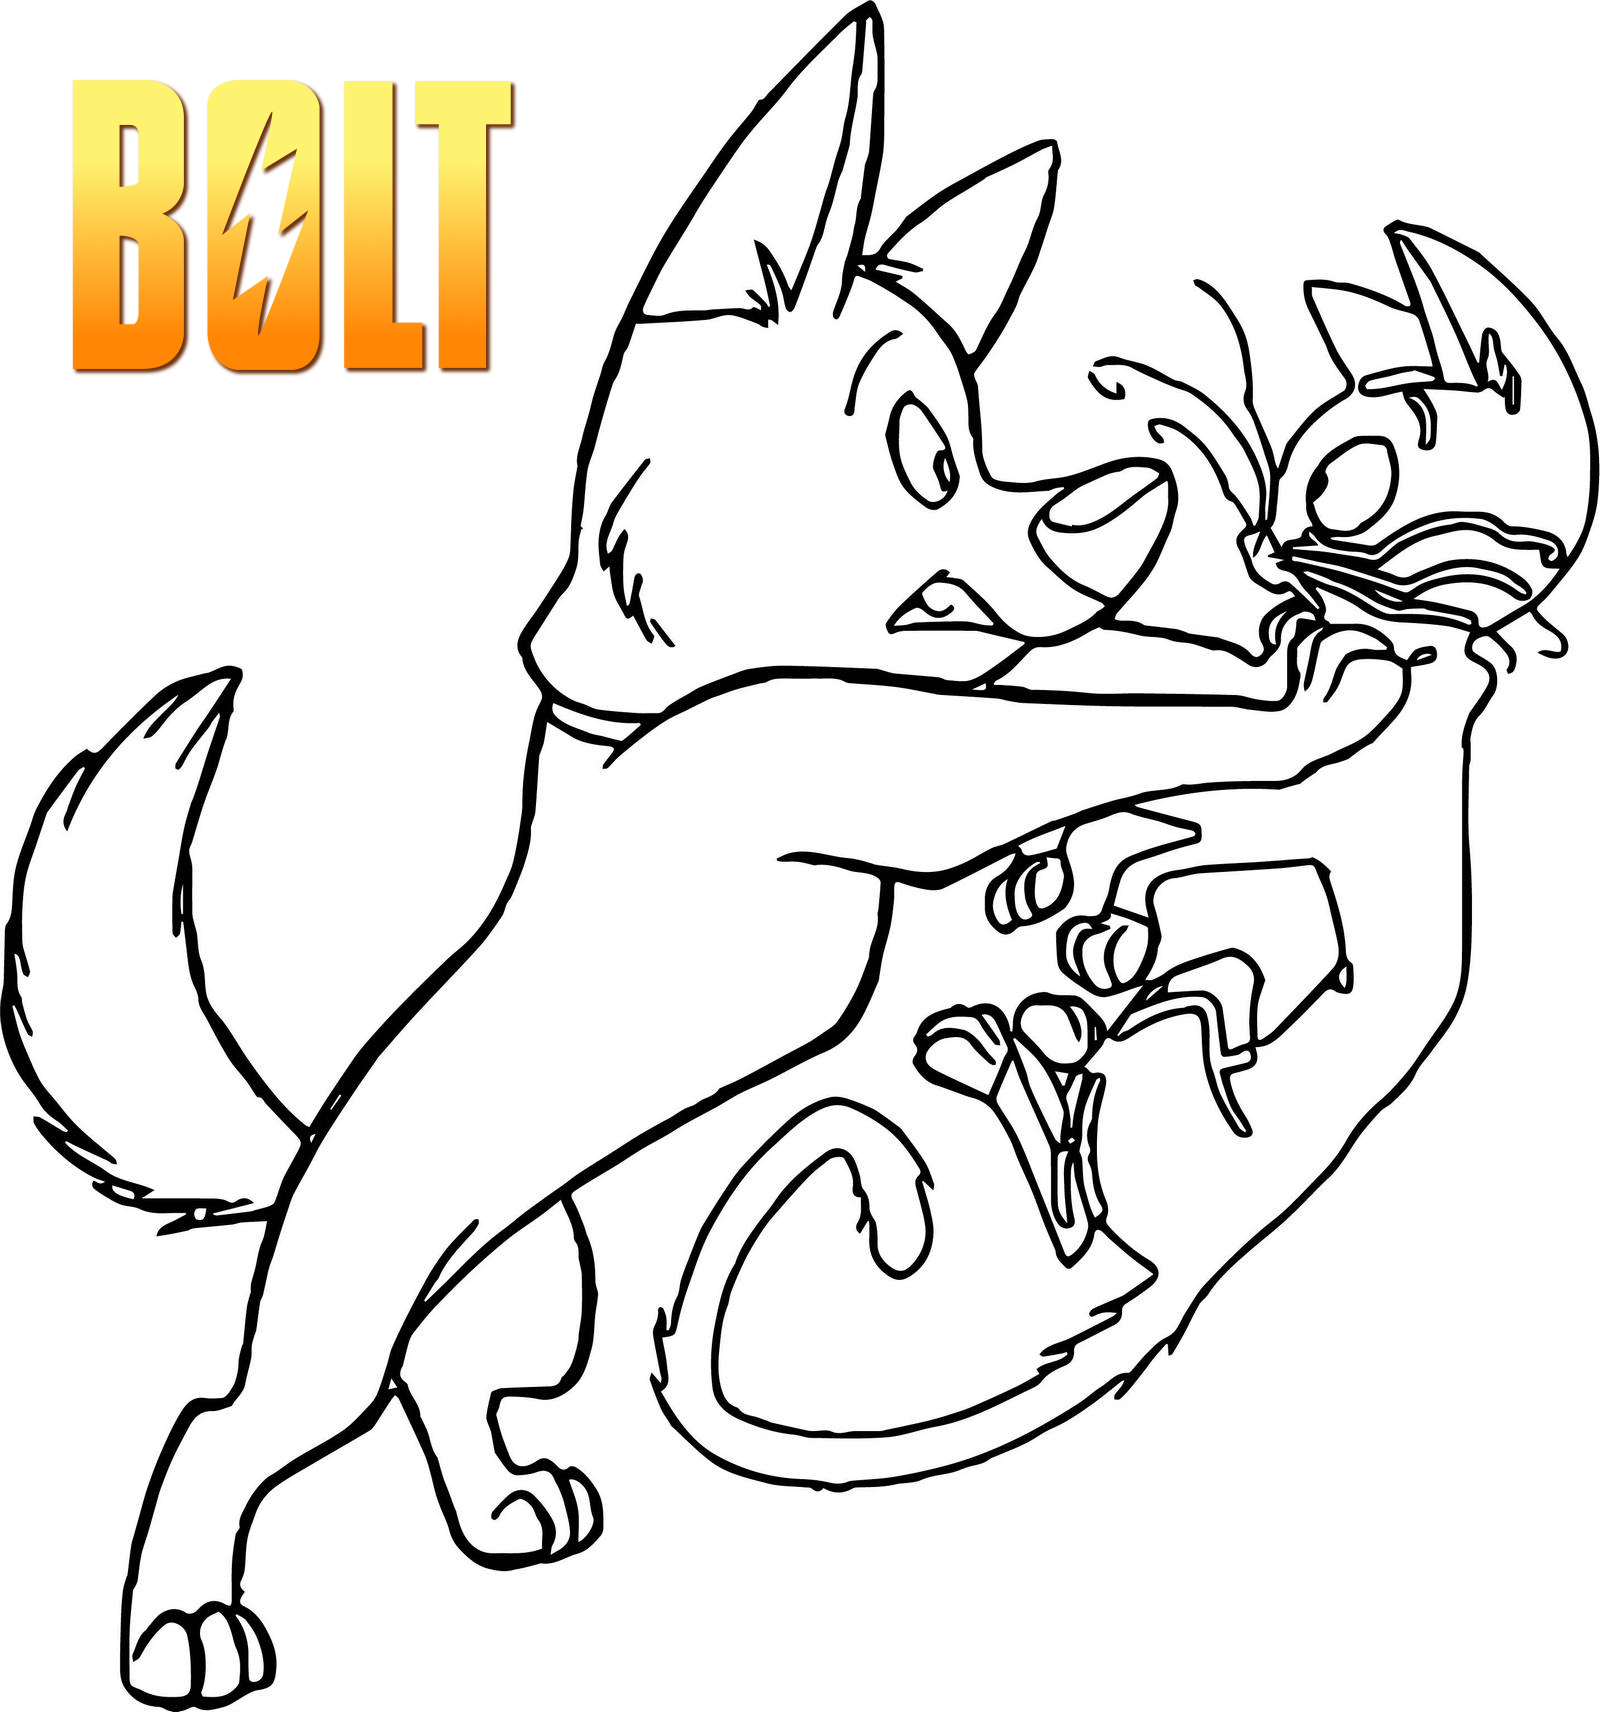 Bolt and Mittens Coloring Pages